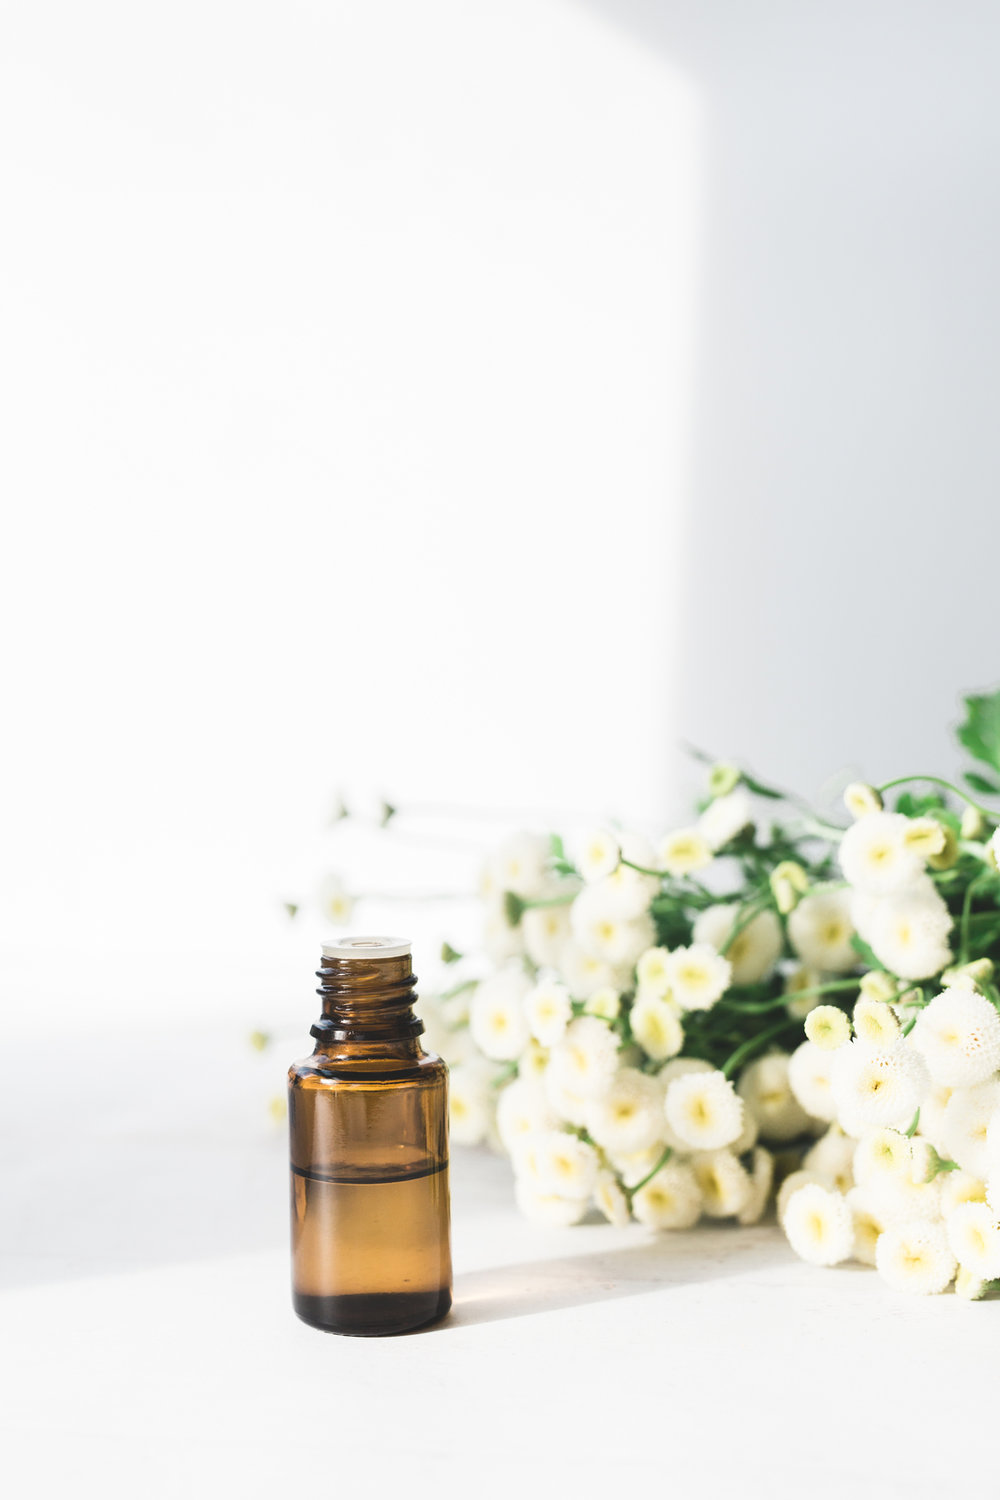 Essential Oils for a Natural Healthy Lifestyle